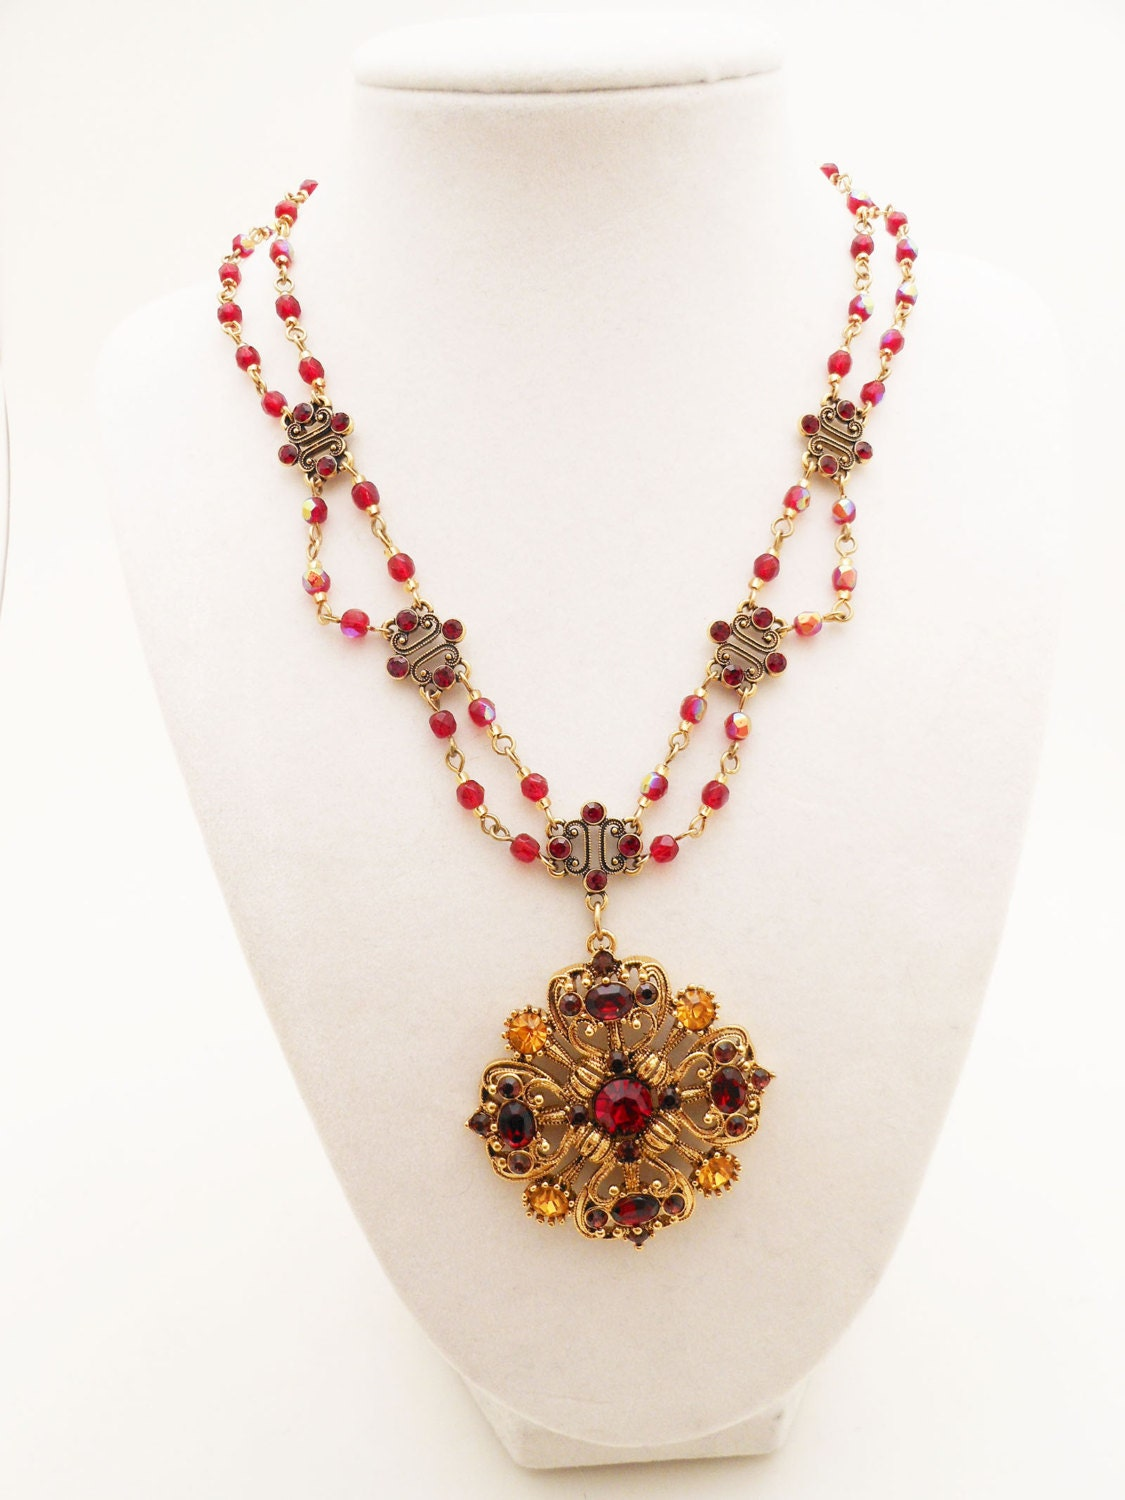 vintage avon necklace with red and gold rhinestones